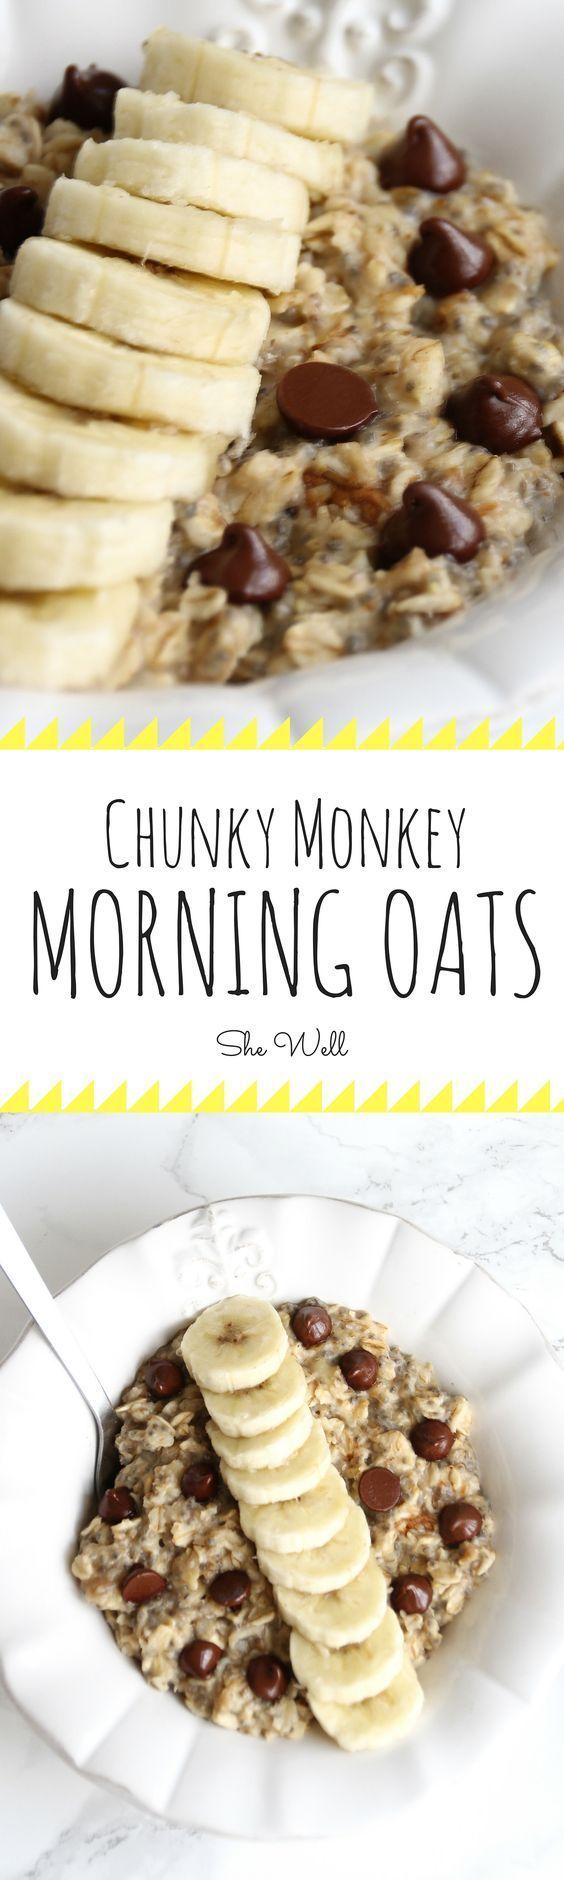 Easy banana, chocolate & peanut butter Chunky Monkey Morning Oats! The perfect breakfast for people who are vegan, vegetarian, dairy-free or gluten-free! Repin this and then click through to find the recipe!